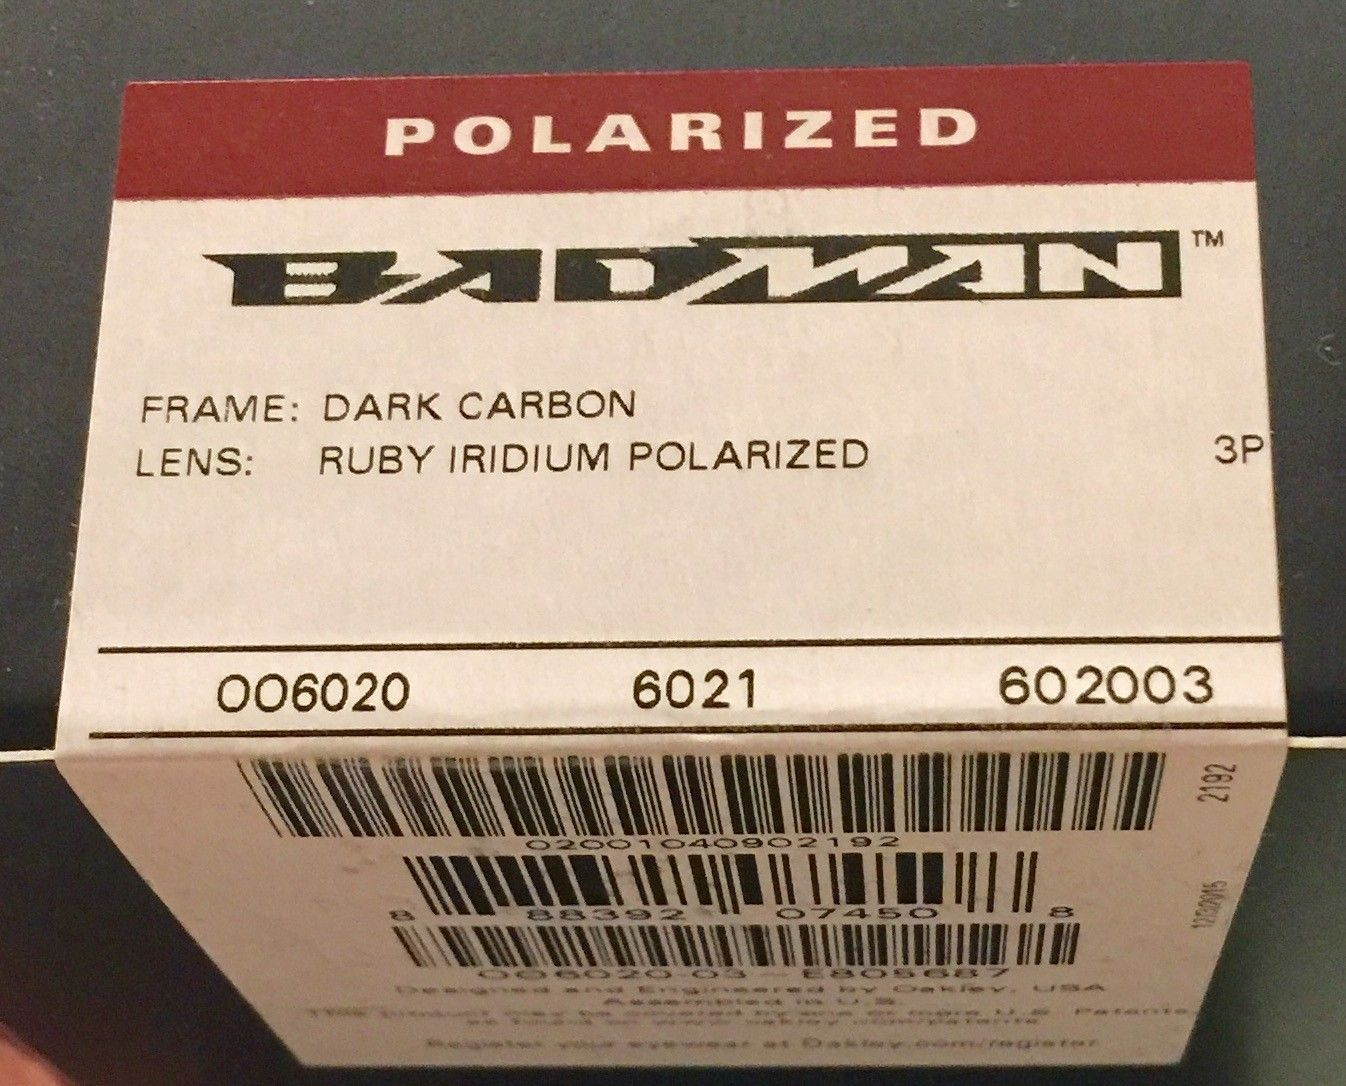 BNIB Badman Dark Carbon / Ruby Iridium Polarized ( Factory Sealed Box ) - image.jpeg